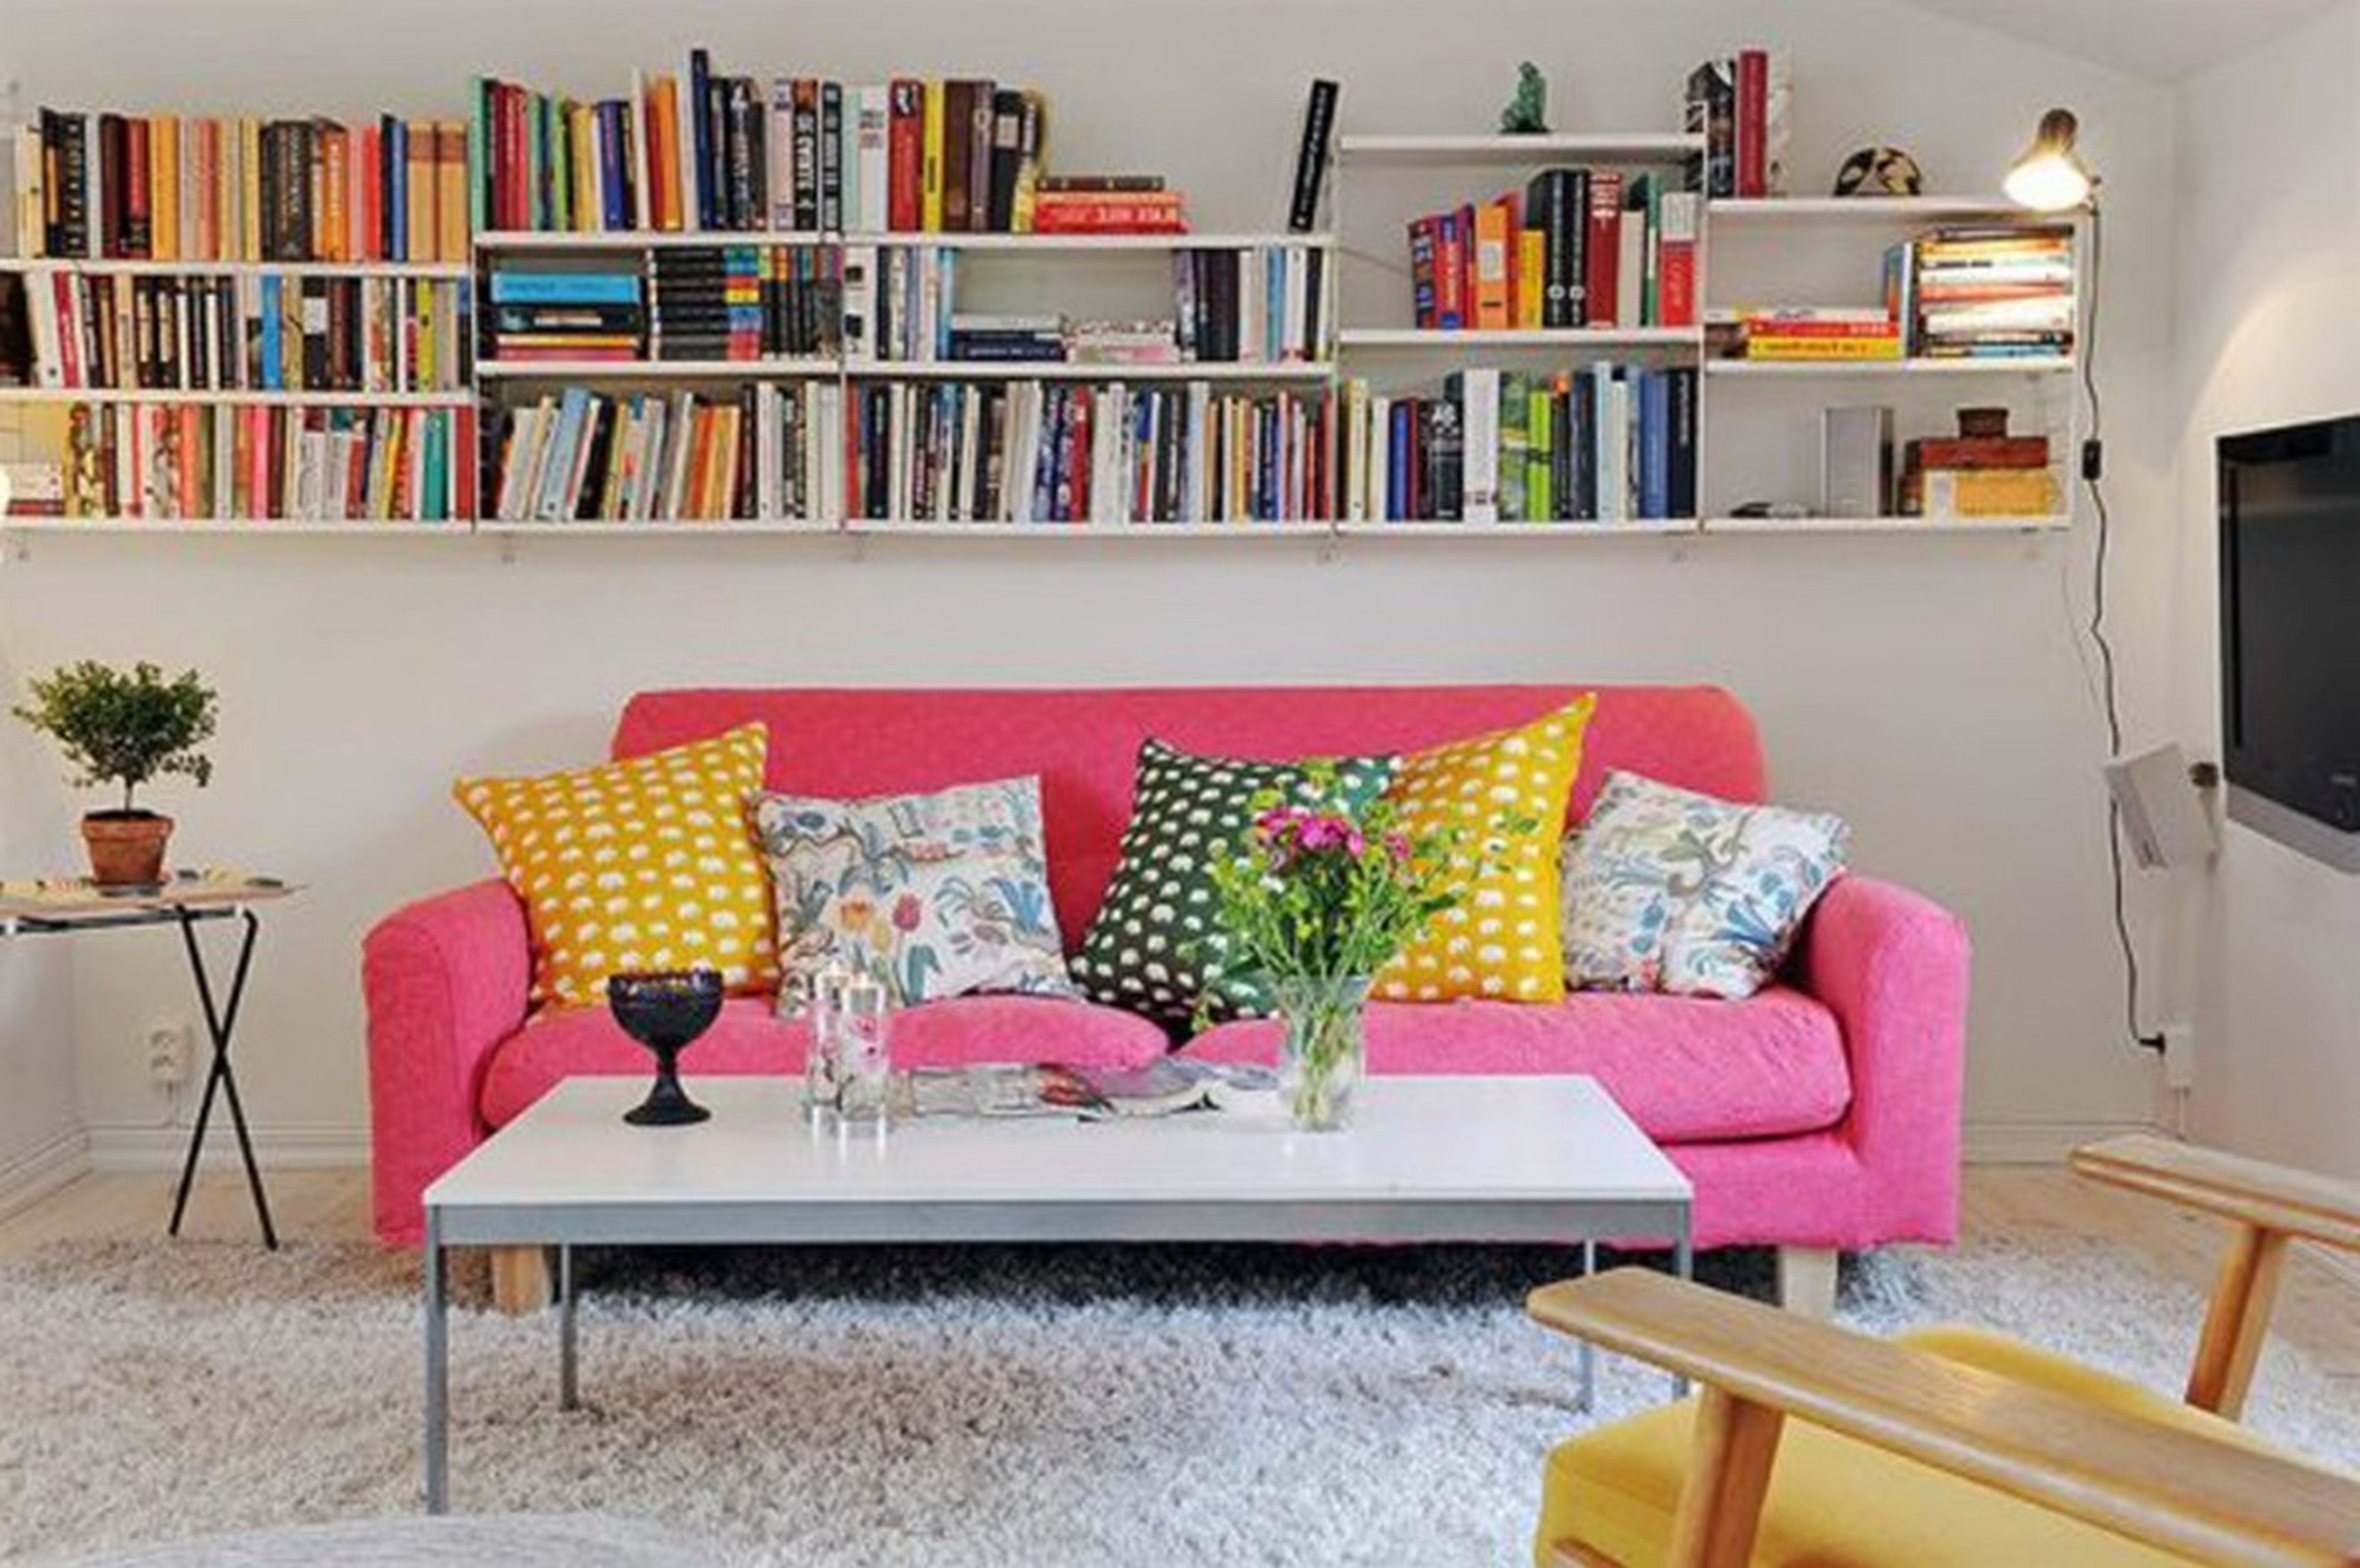 Pink Sofa White Shelves Living Room Eclectic Decor Home Designs. Very Small Apartment Ideas. Room Studio Interior Design Small Apartments Long Narrow Studio. How To Stay Safe Looking for No Fee Apartment Rentals in Nyc Nyc